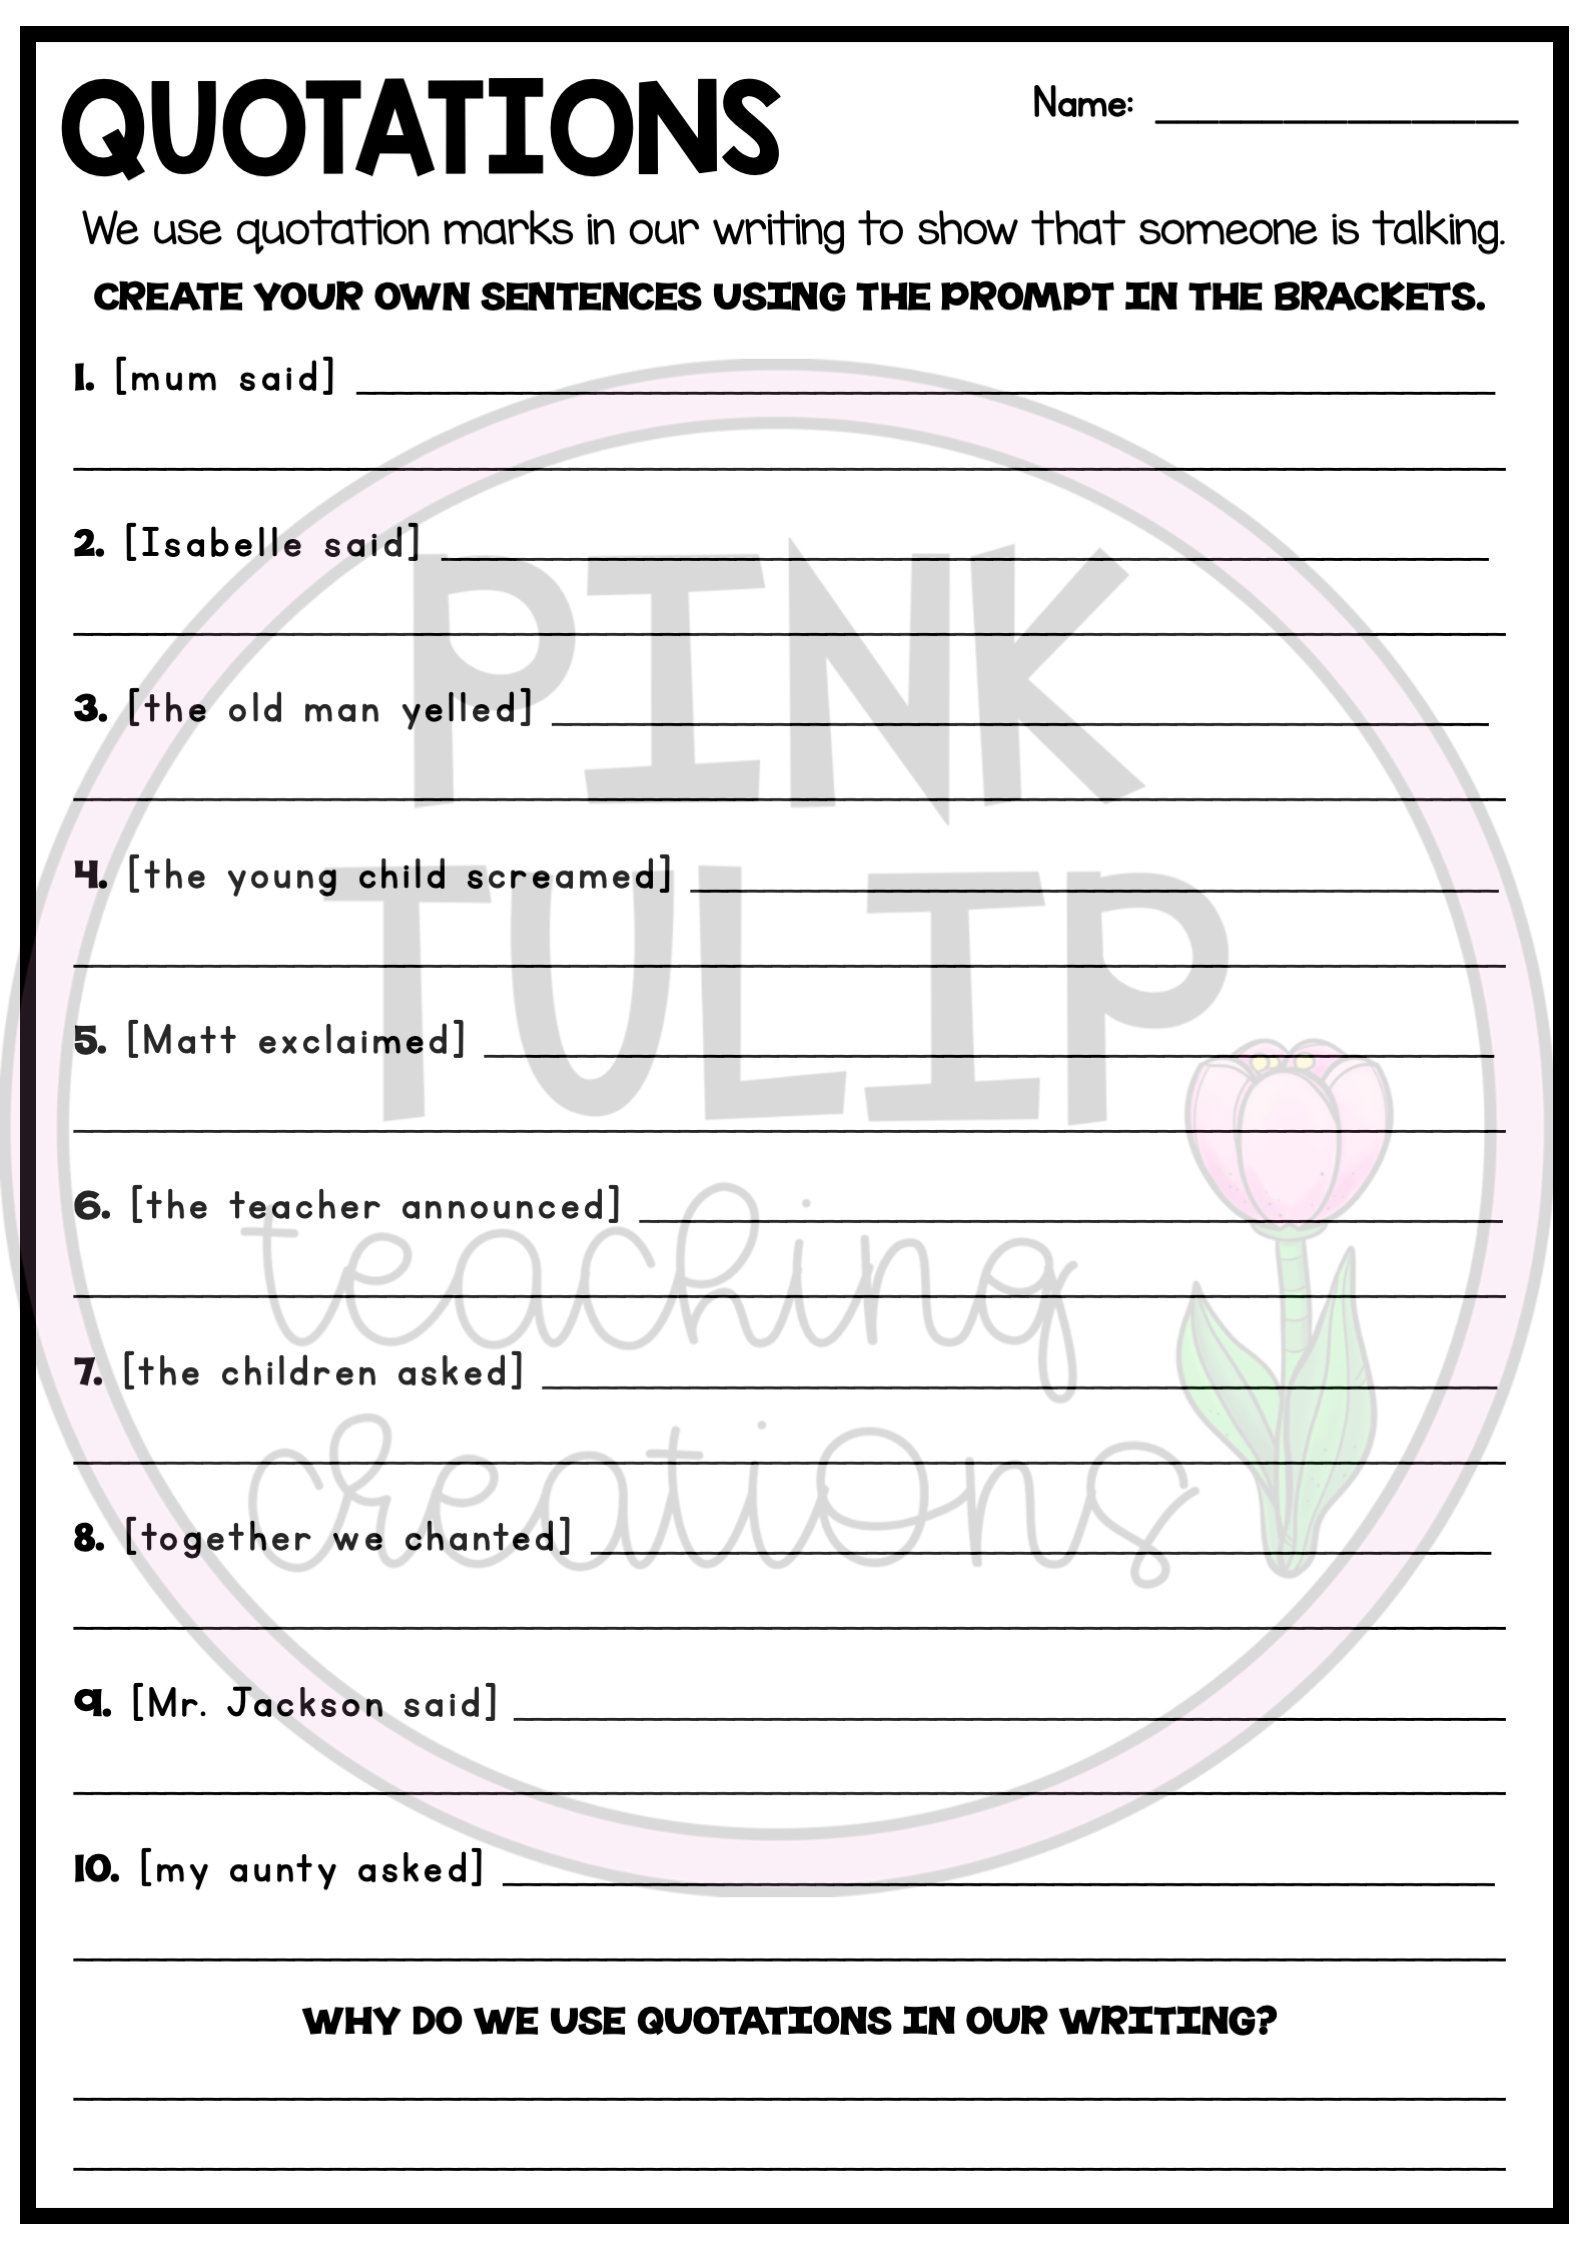 Using Quotations Worksheets